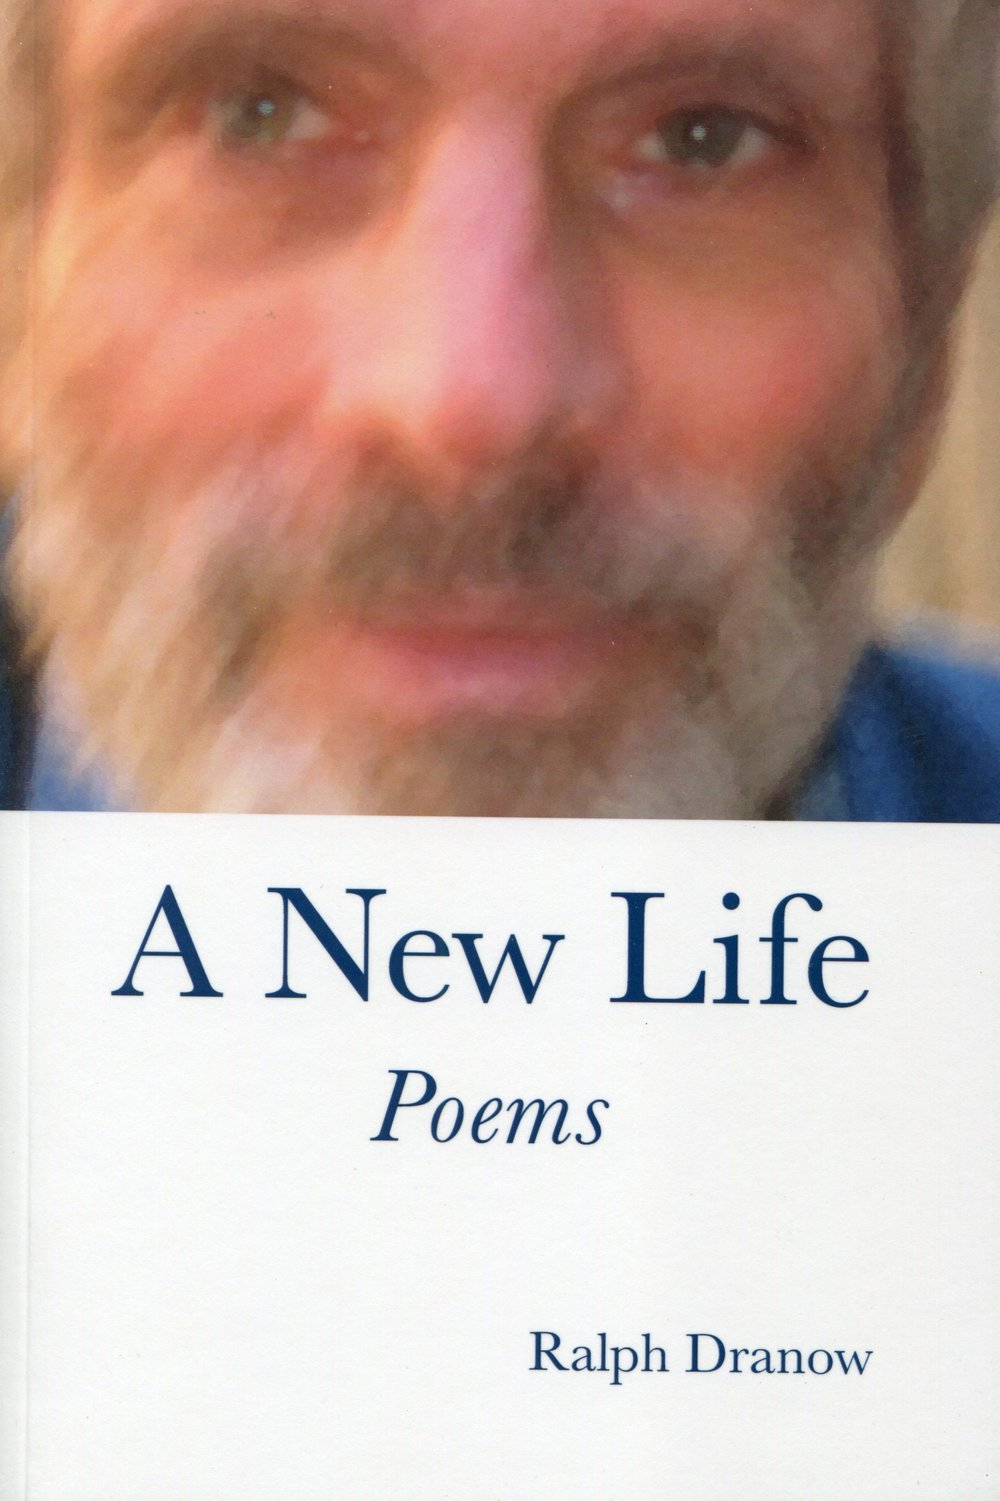 - A NEW LIFE: Poems, by RALPH DRANOW.The 76 vivid poems in this book offer us a unique and compassionate view of what it is to be human. A father spending hours looking for his young daughter's toy in